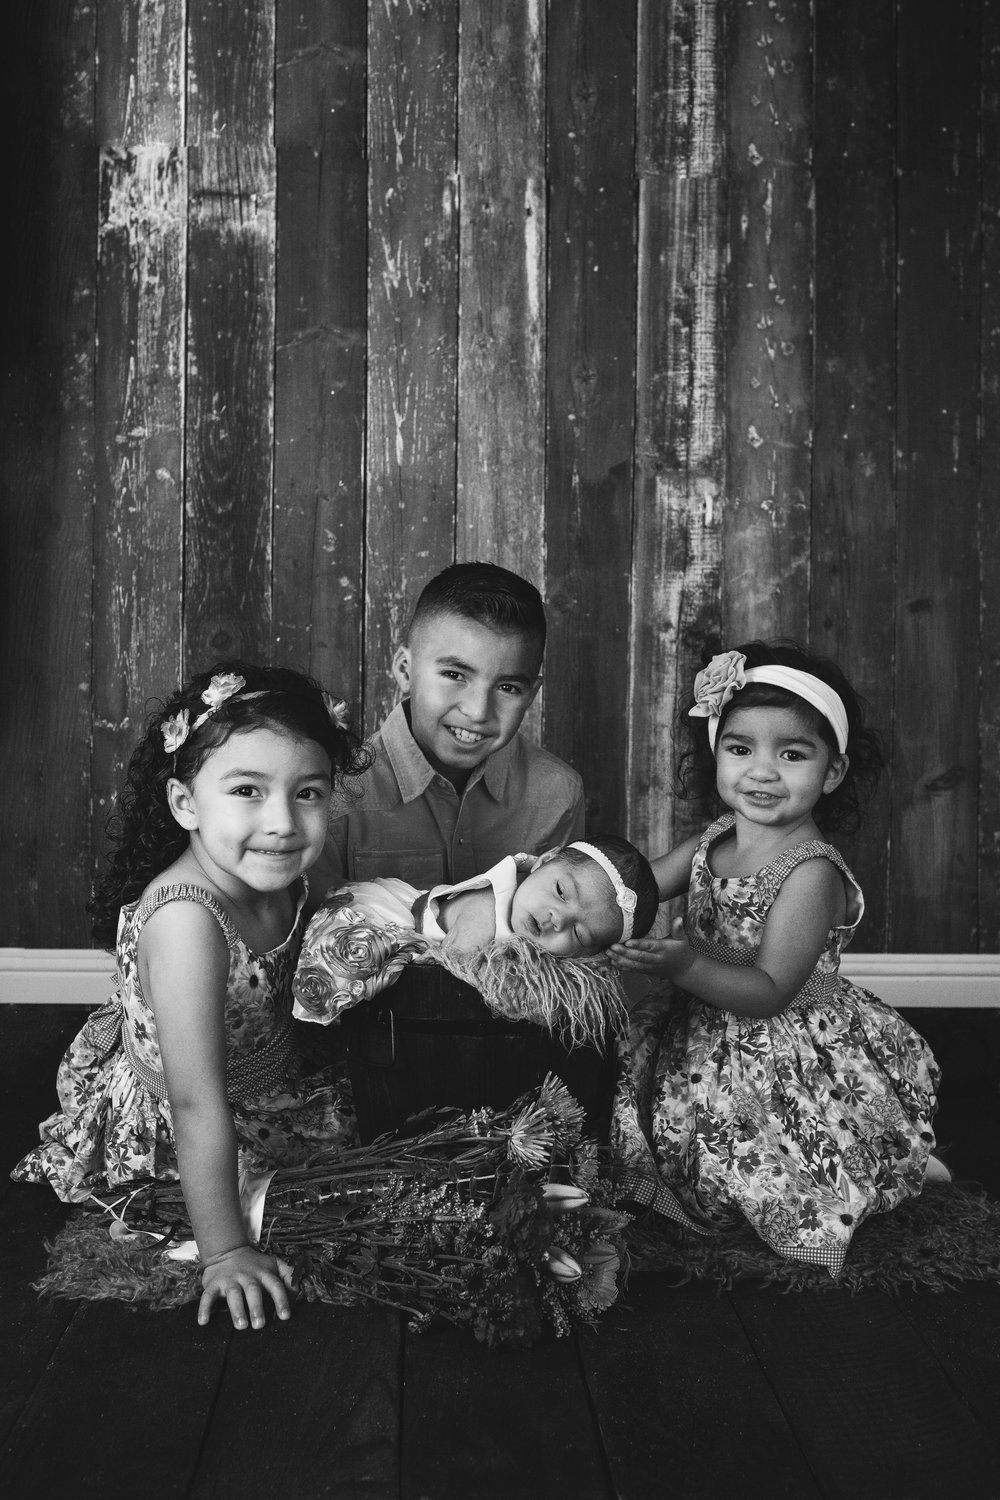 Black and white portrait of the the children together.